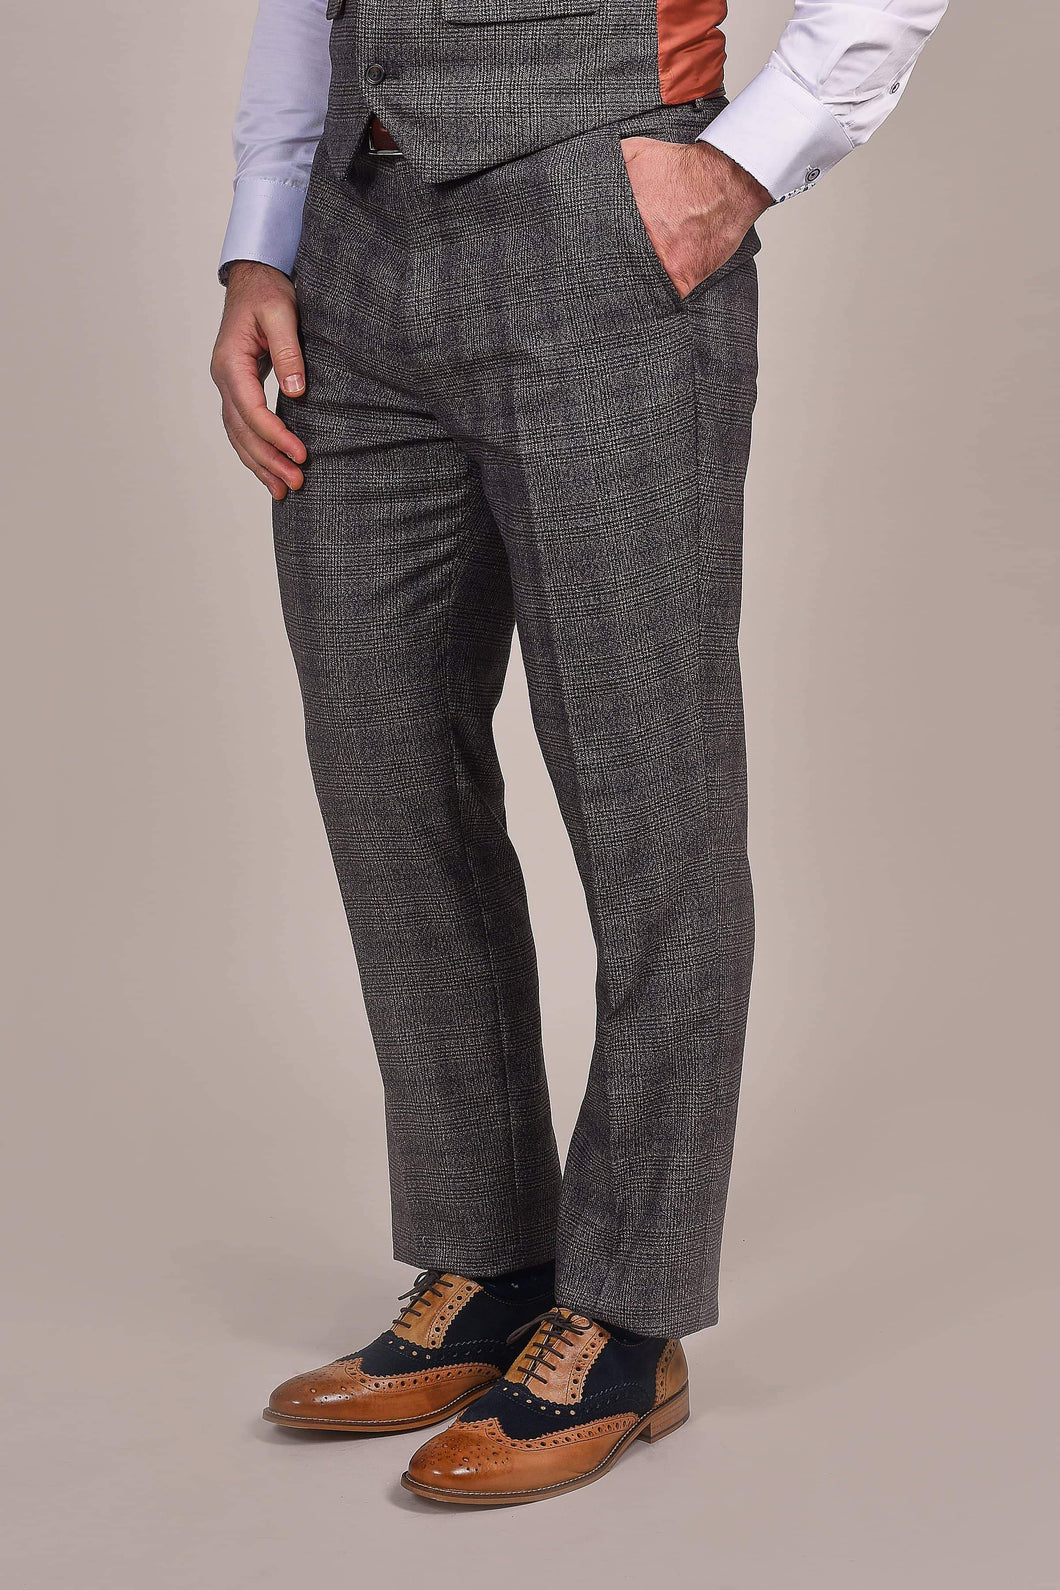 Master Debonair Charcoal Prince Of Wales Check Trousers 28R / Charcoal